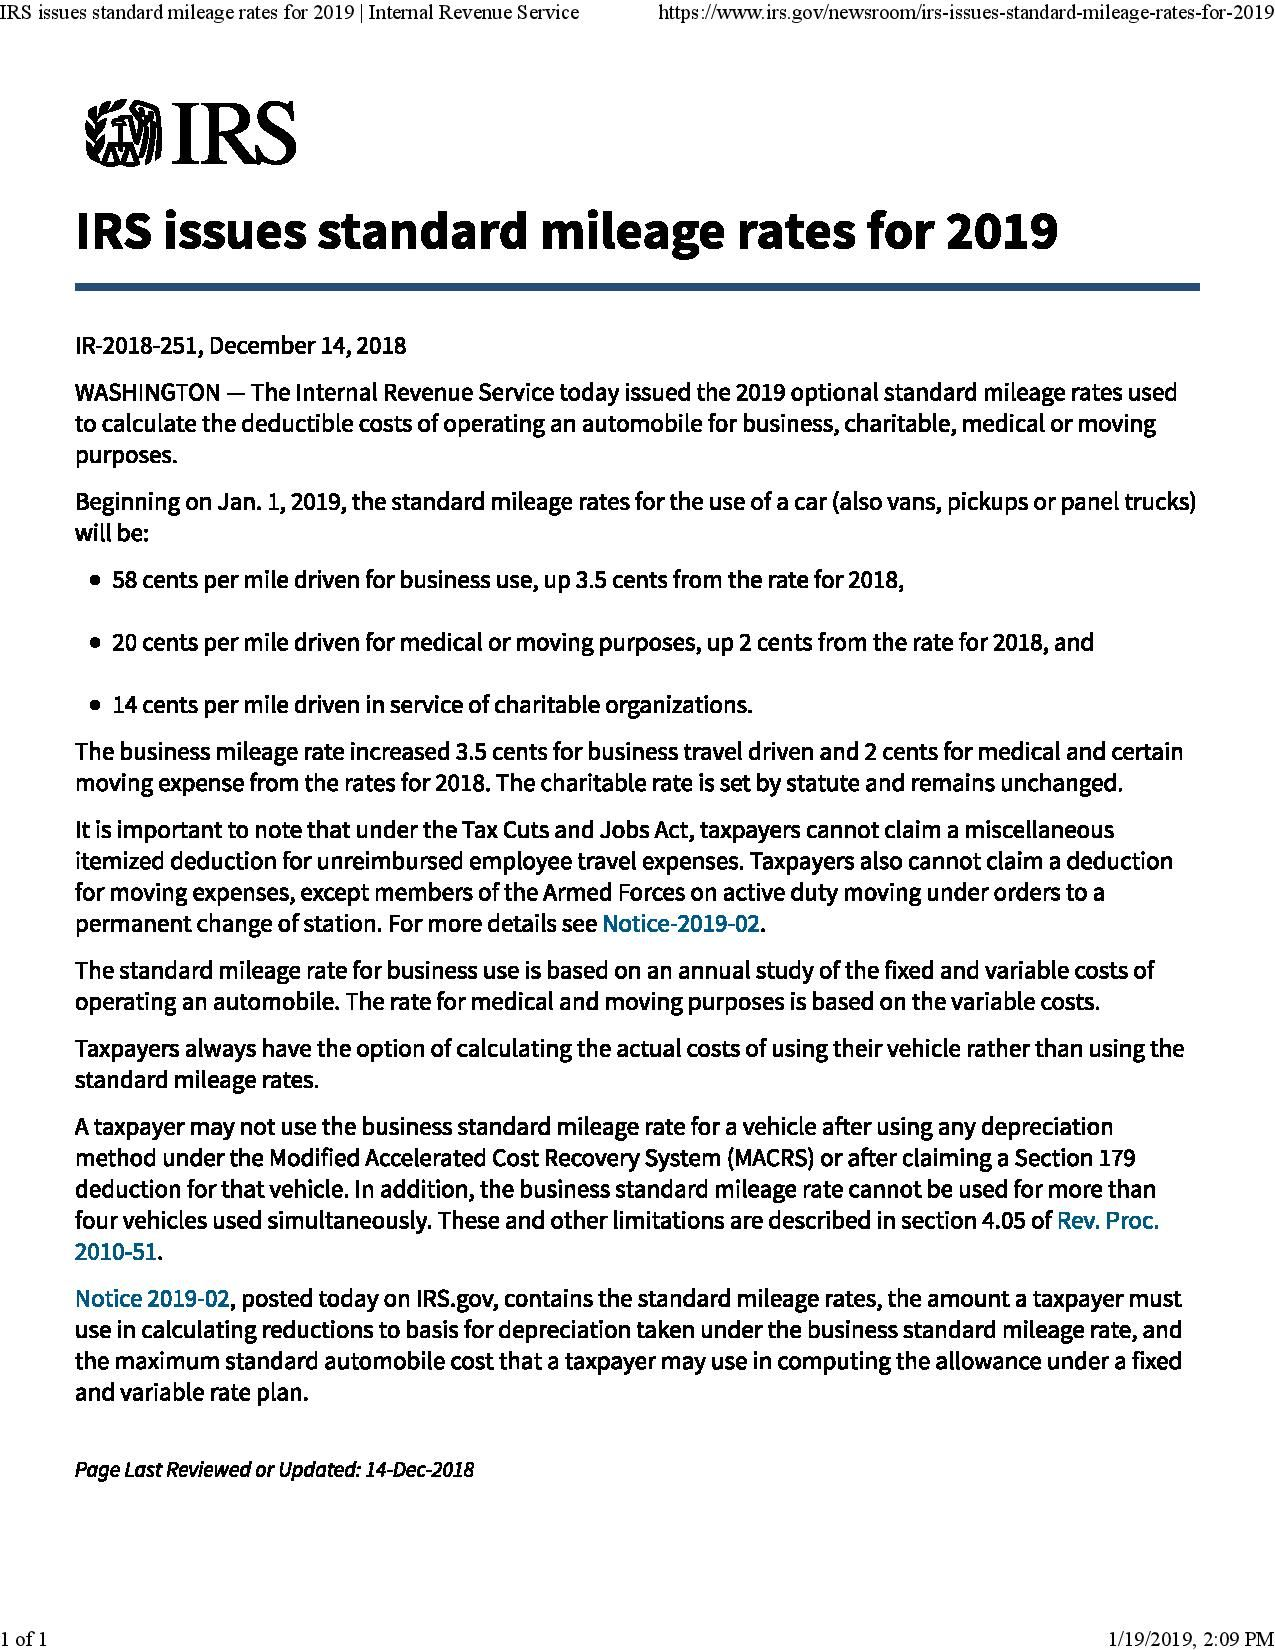 Irs Mileage Allowance >> Irs Standard Mileage Rates For 2019 Internal Revenue